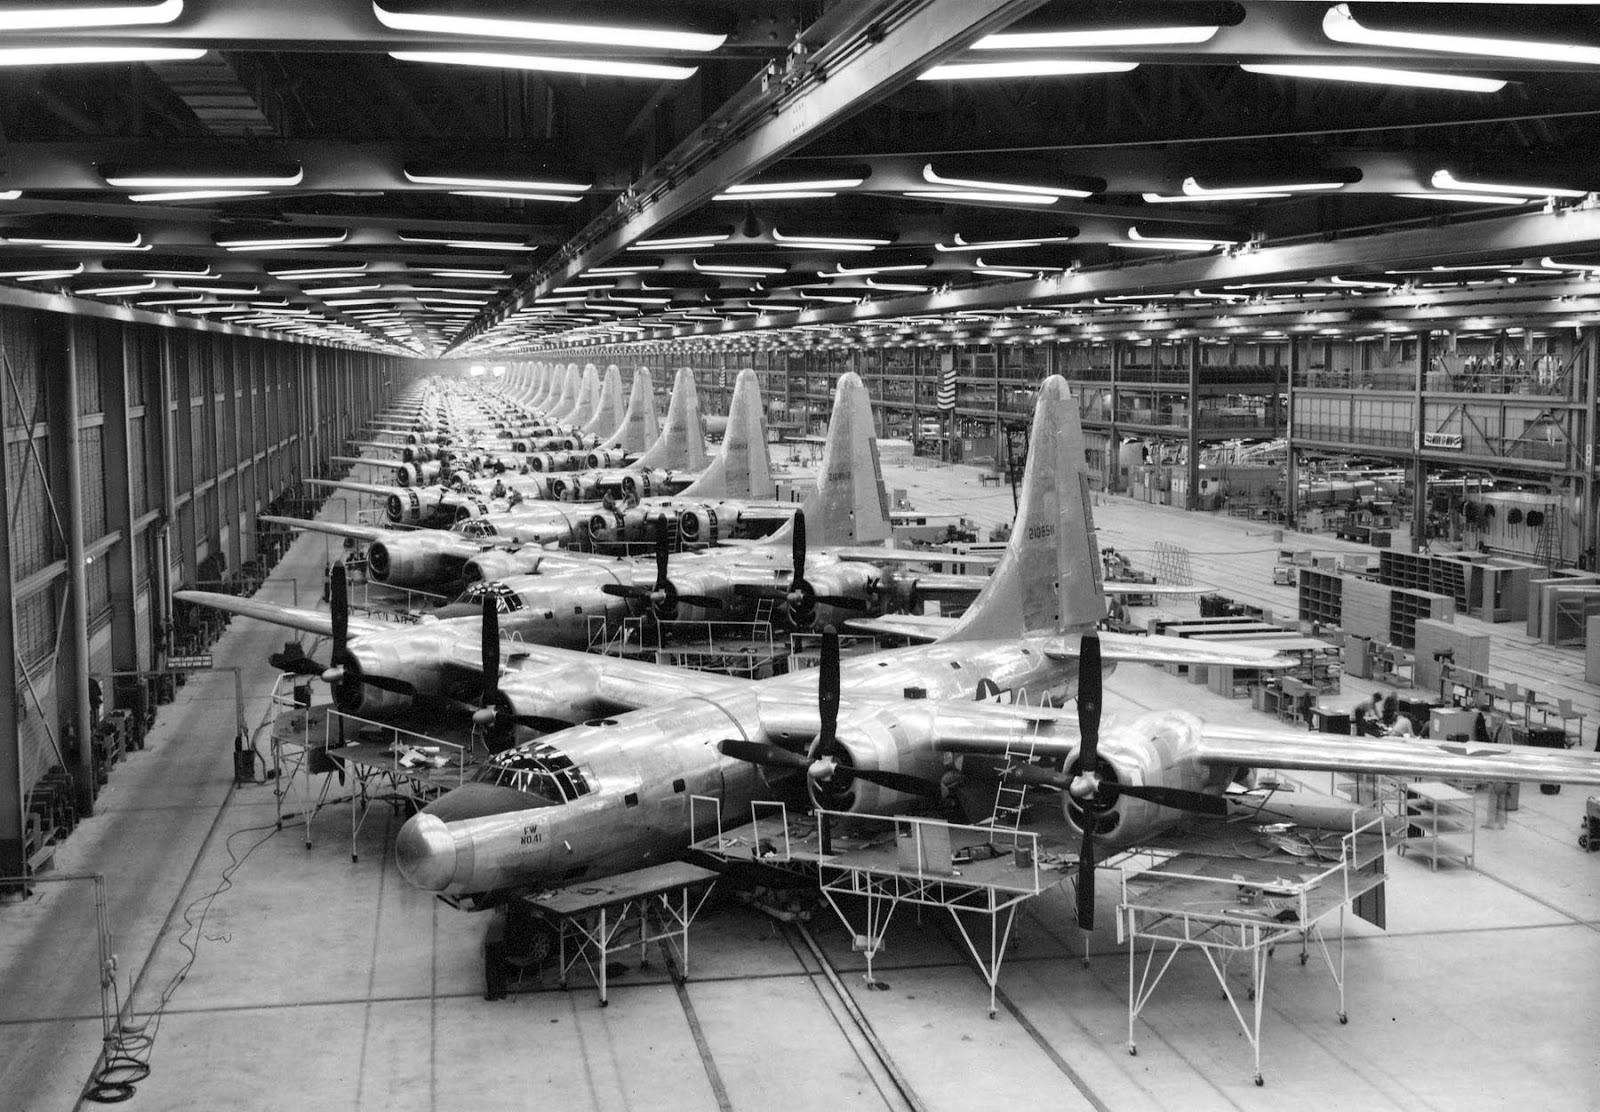 Consolidated B-32 Dominator Bomber factory in Fort Worth, Texas, 1944.